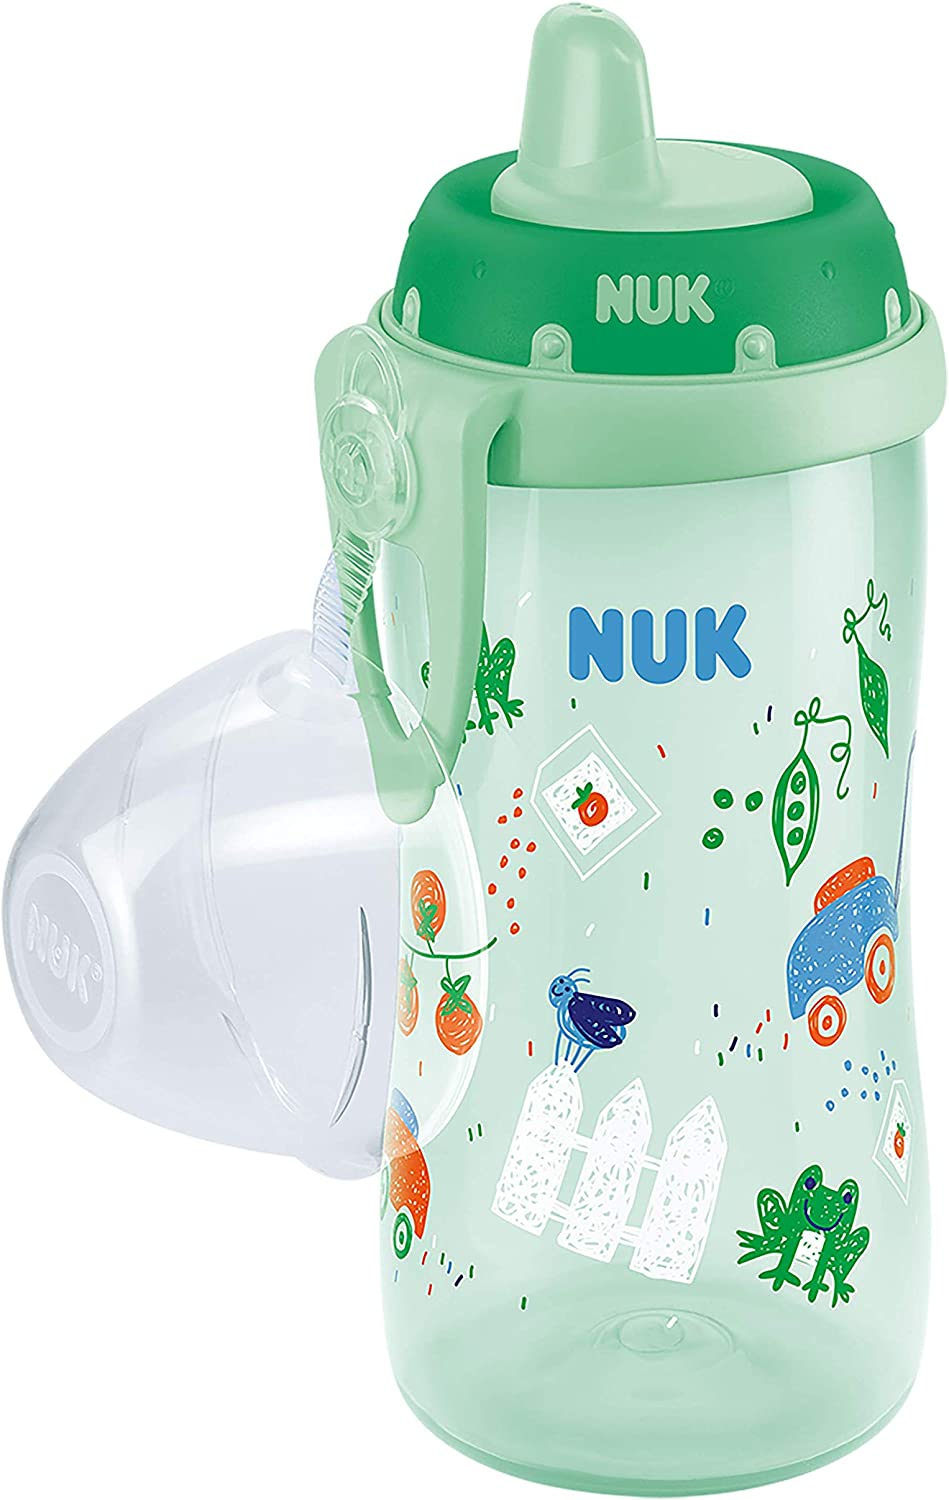 Clip /& Protective Cap NUK First Choice+ Kiddy Cup Toddler Cup Leak-Proof Toughened Spout 12 Months+ Pink Garden BPA-Free 300 ml